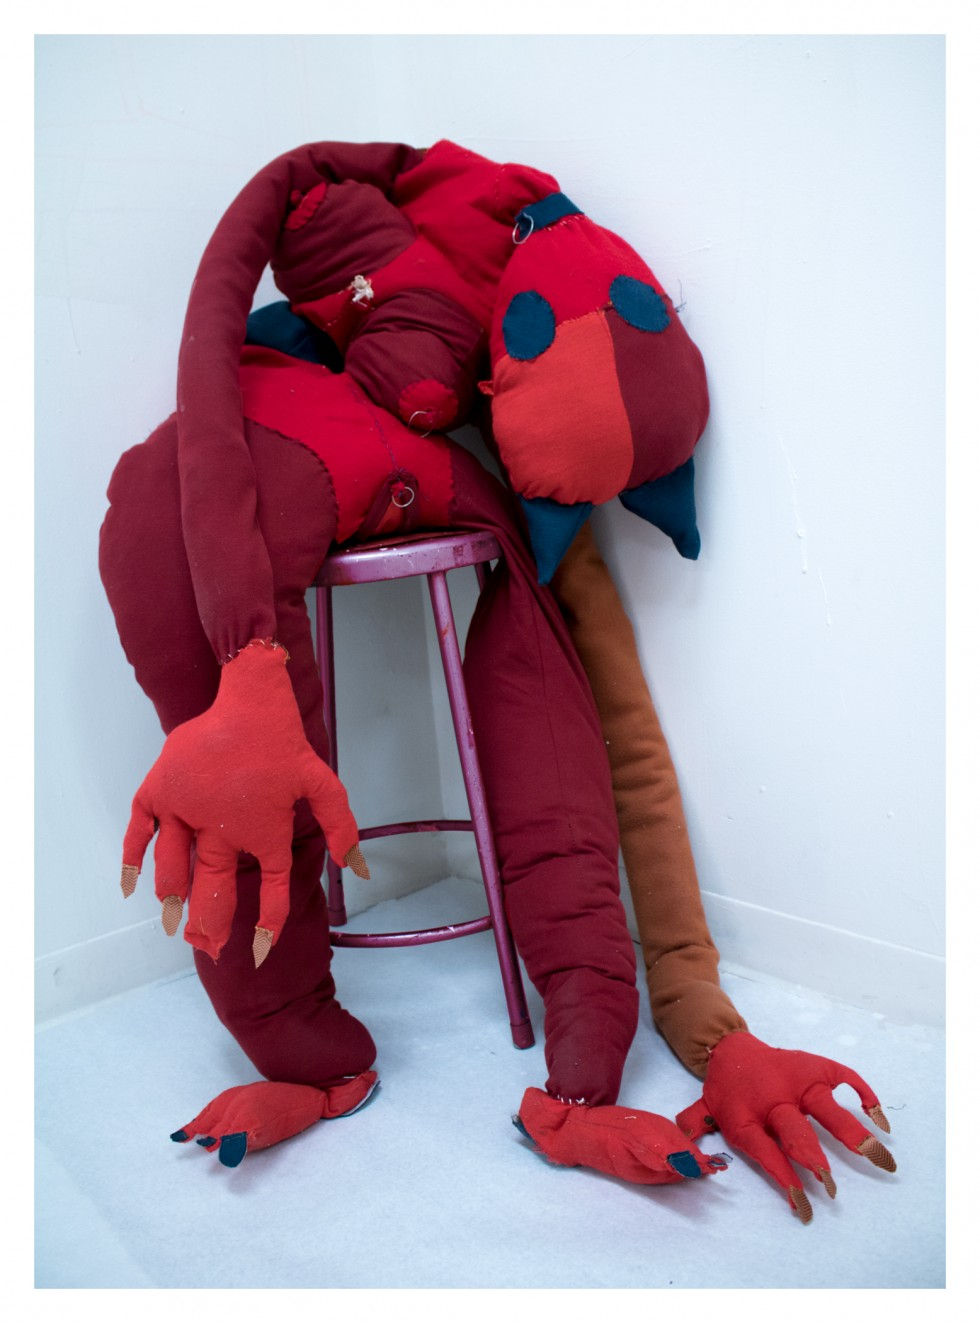 A large soft sculpture of a red, human like cat, is made of felt, and stuffed with wool. The cat is soft sculpture, with pointy ears, and various human like extensions, such as arms, hands, legs, genitals, breasts, fingers and toes. The cat is accessorize